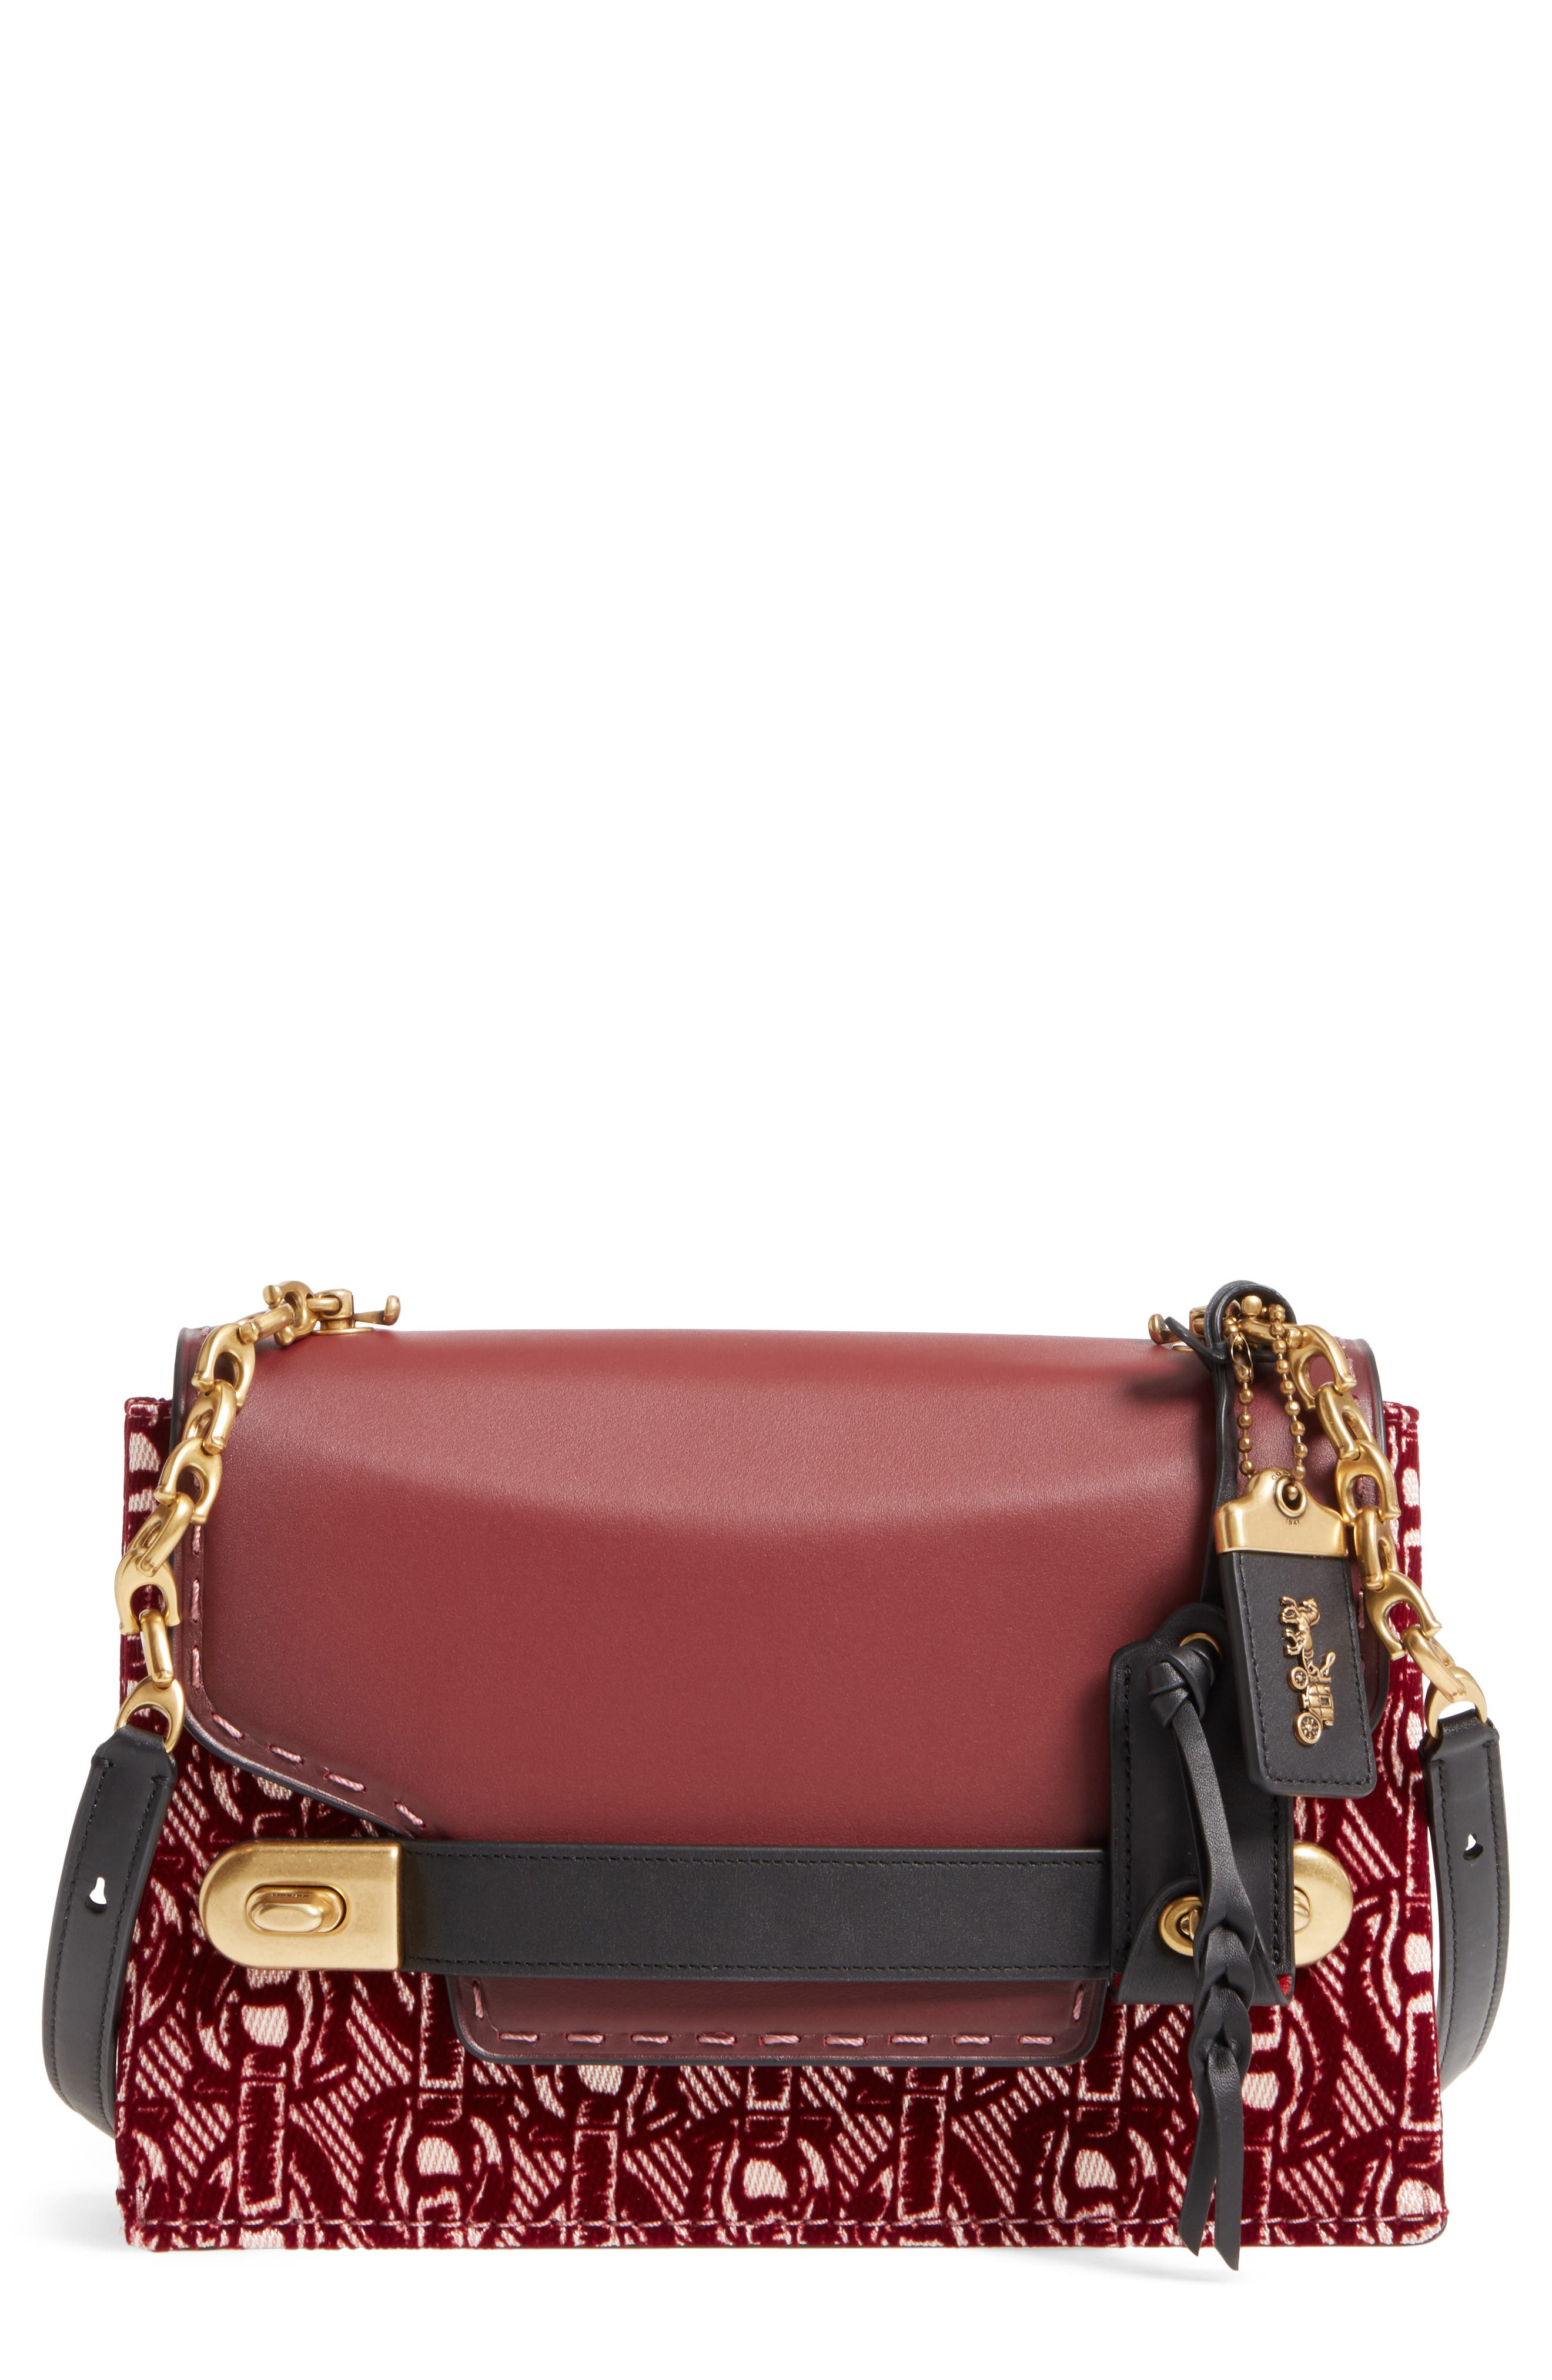 Swagger Chain Leather Crossbody Bag,                         Main,                         color, Bordeaux